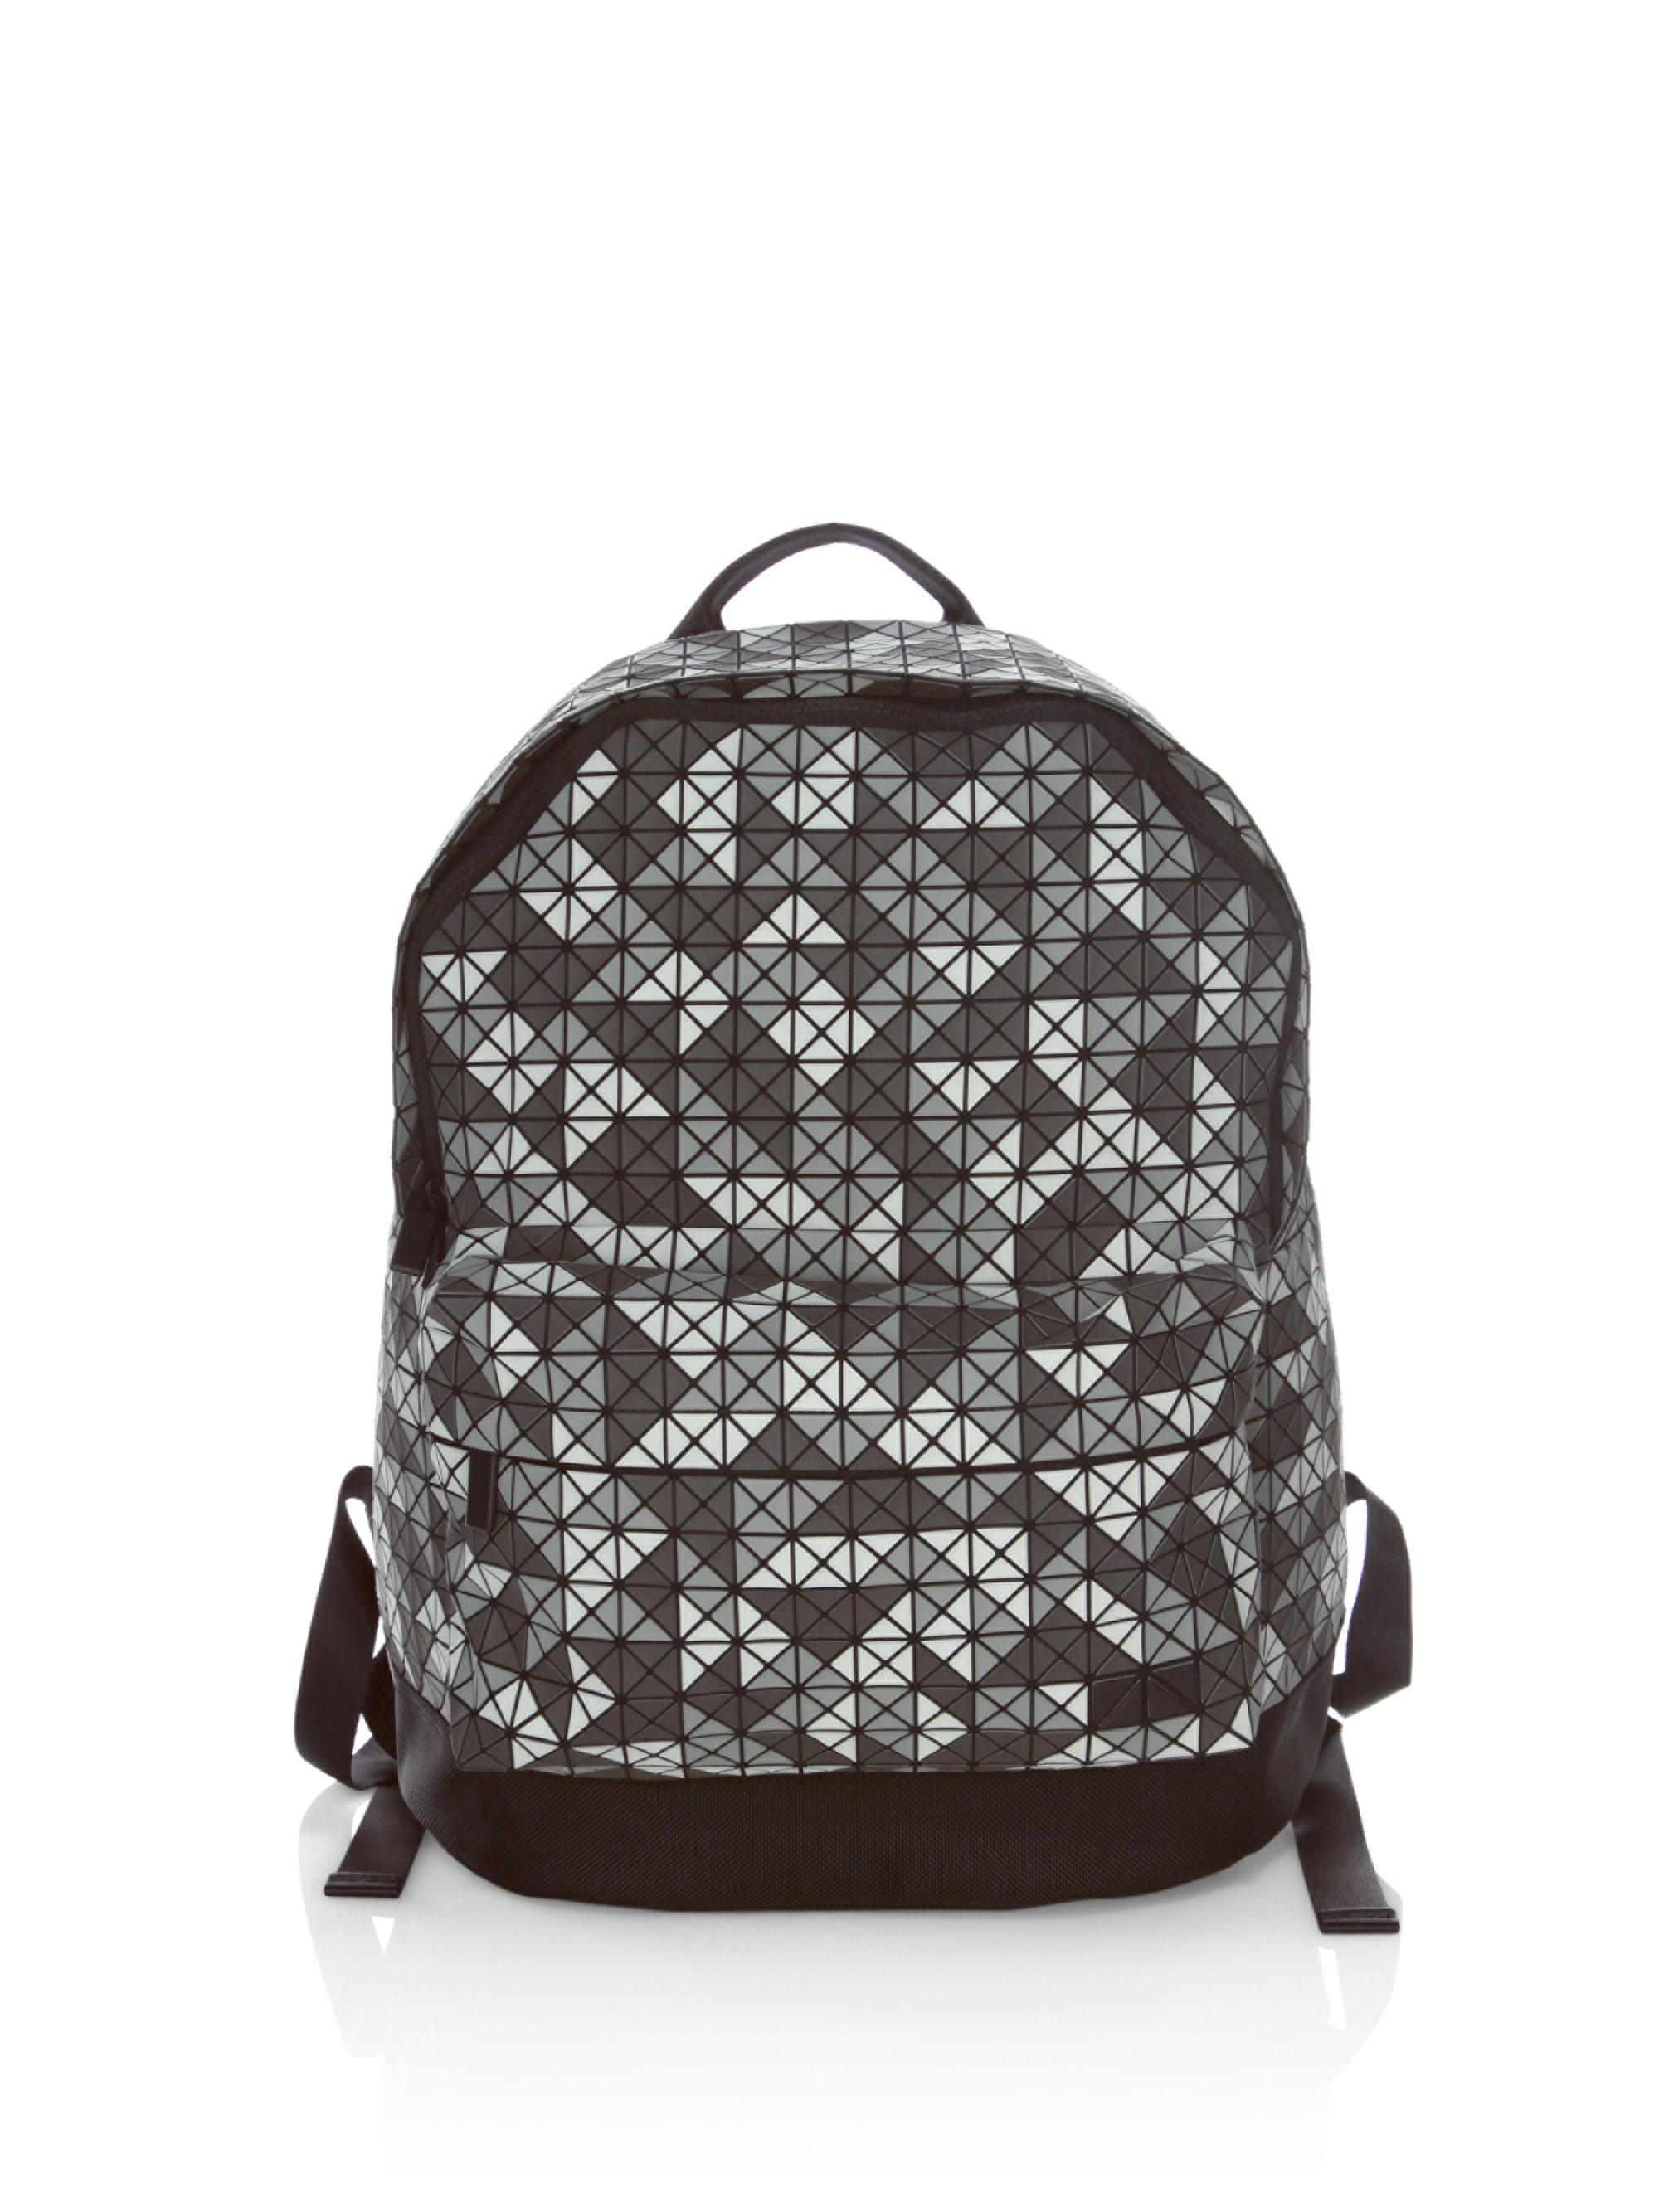 c1a87626d76f Lyst - Bao Bao Issey Miyake Symmetrical Daypack Backpack in Gray for Men